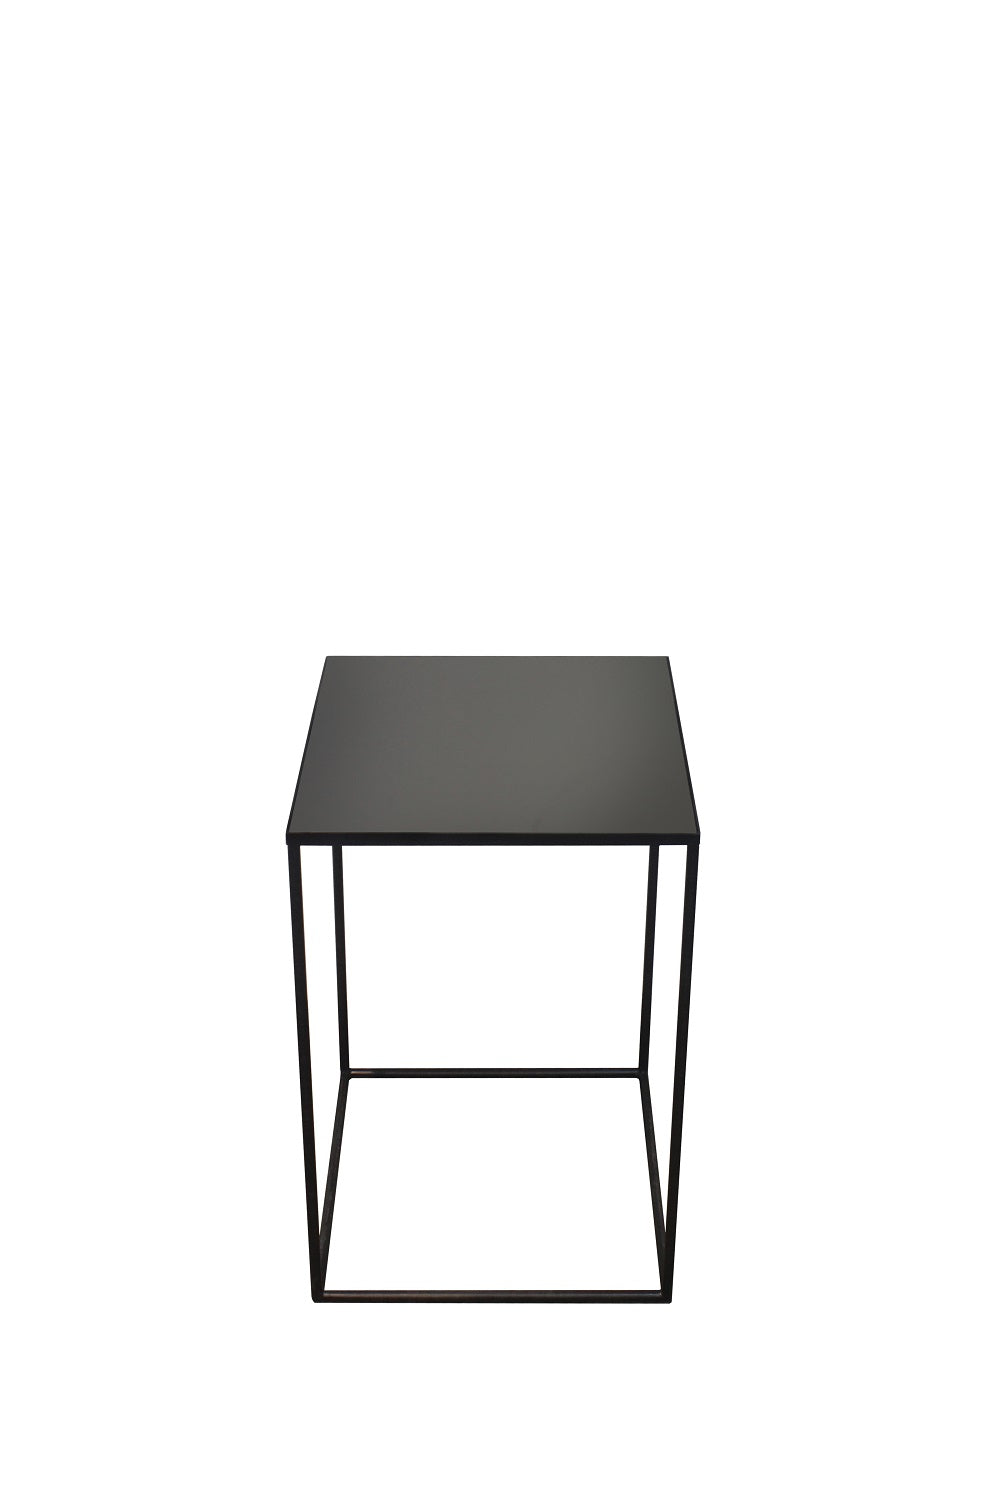 Charcoal Square side table-mid/L 40/40/60